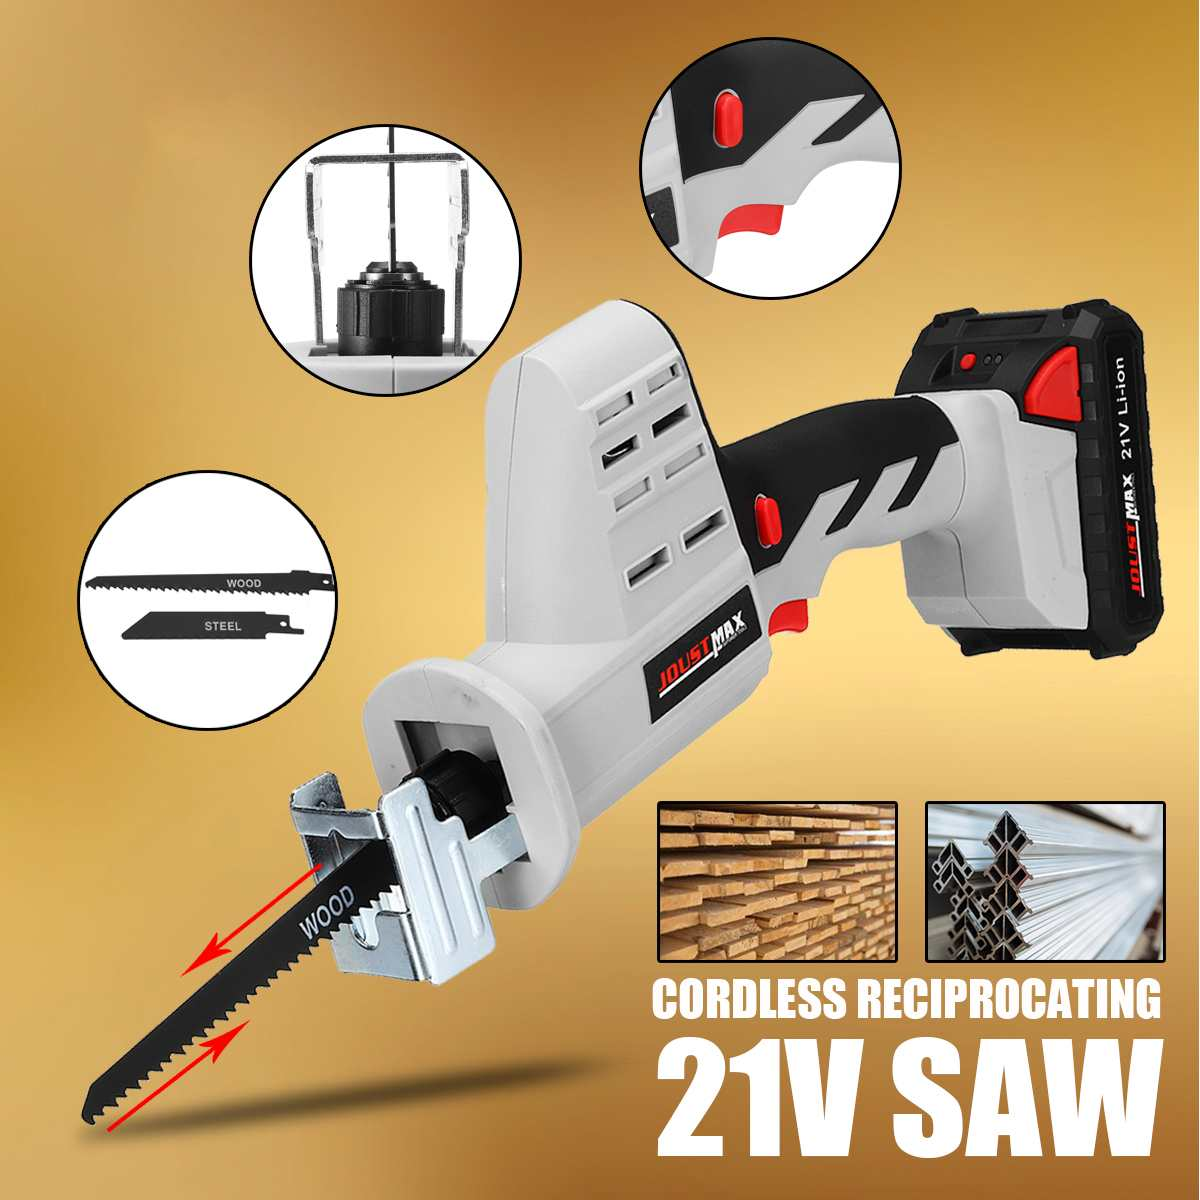 Portable 21V 1500mAh Li Ion Battery Cordless Reciprocating Saw Electric Saber Saw Blade for Wood Metal Chain Saws Cut Power Tool